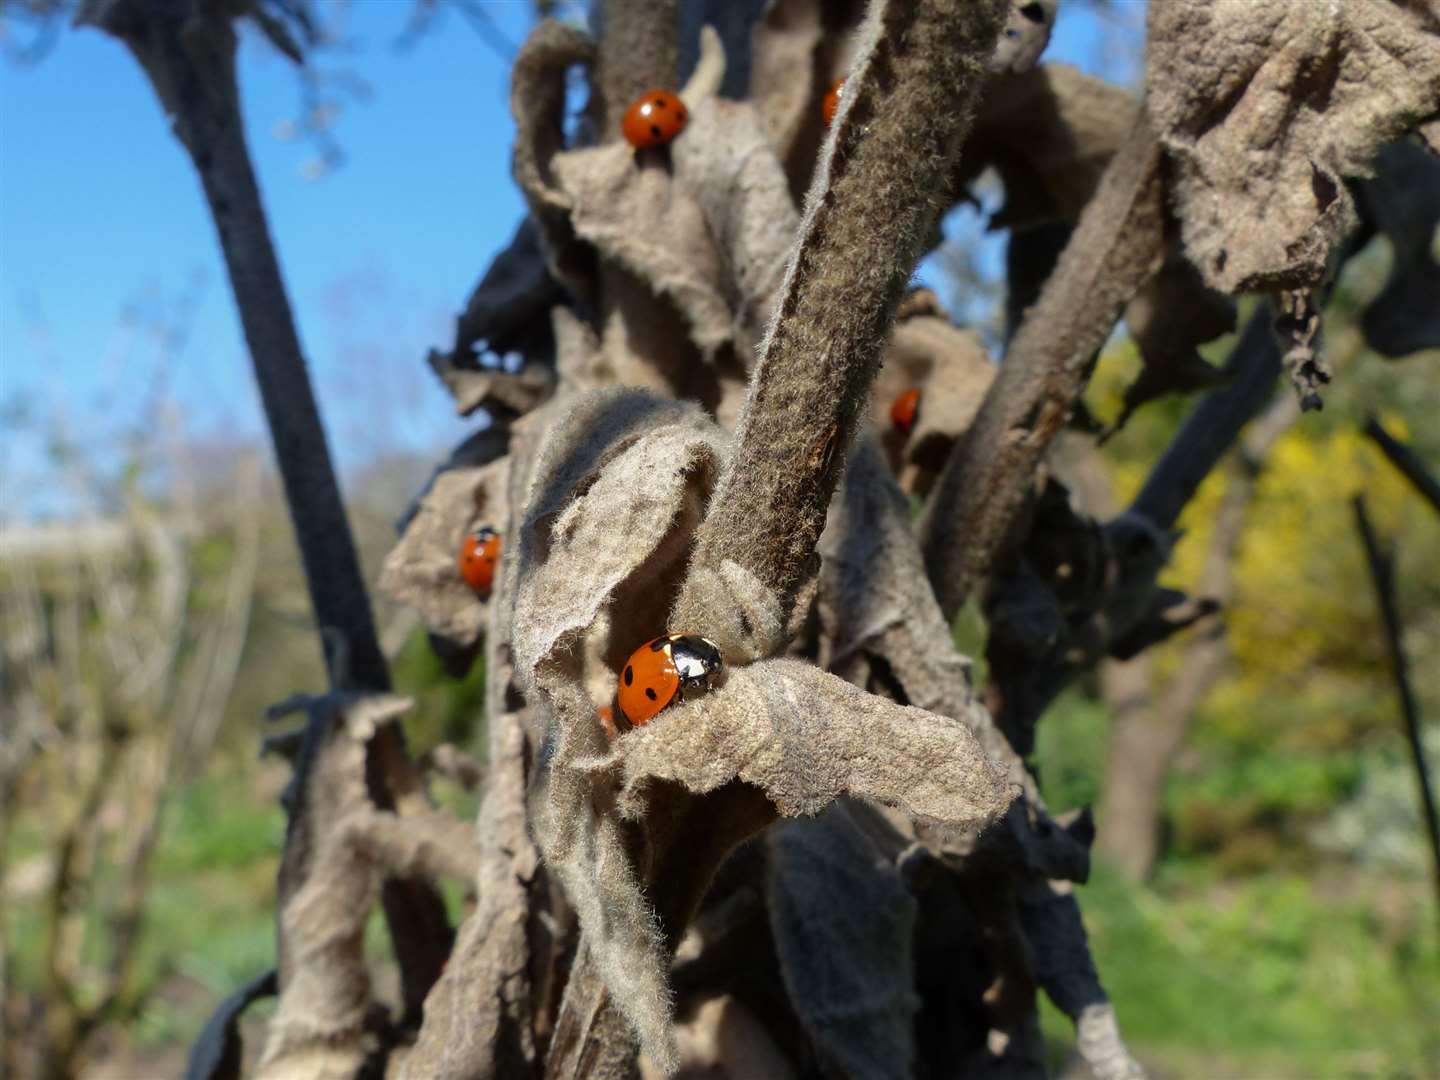 Ladybirds coming out of hibernation from dead stems on a tree